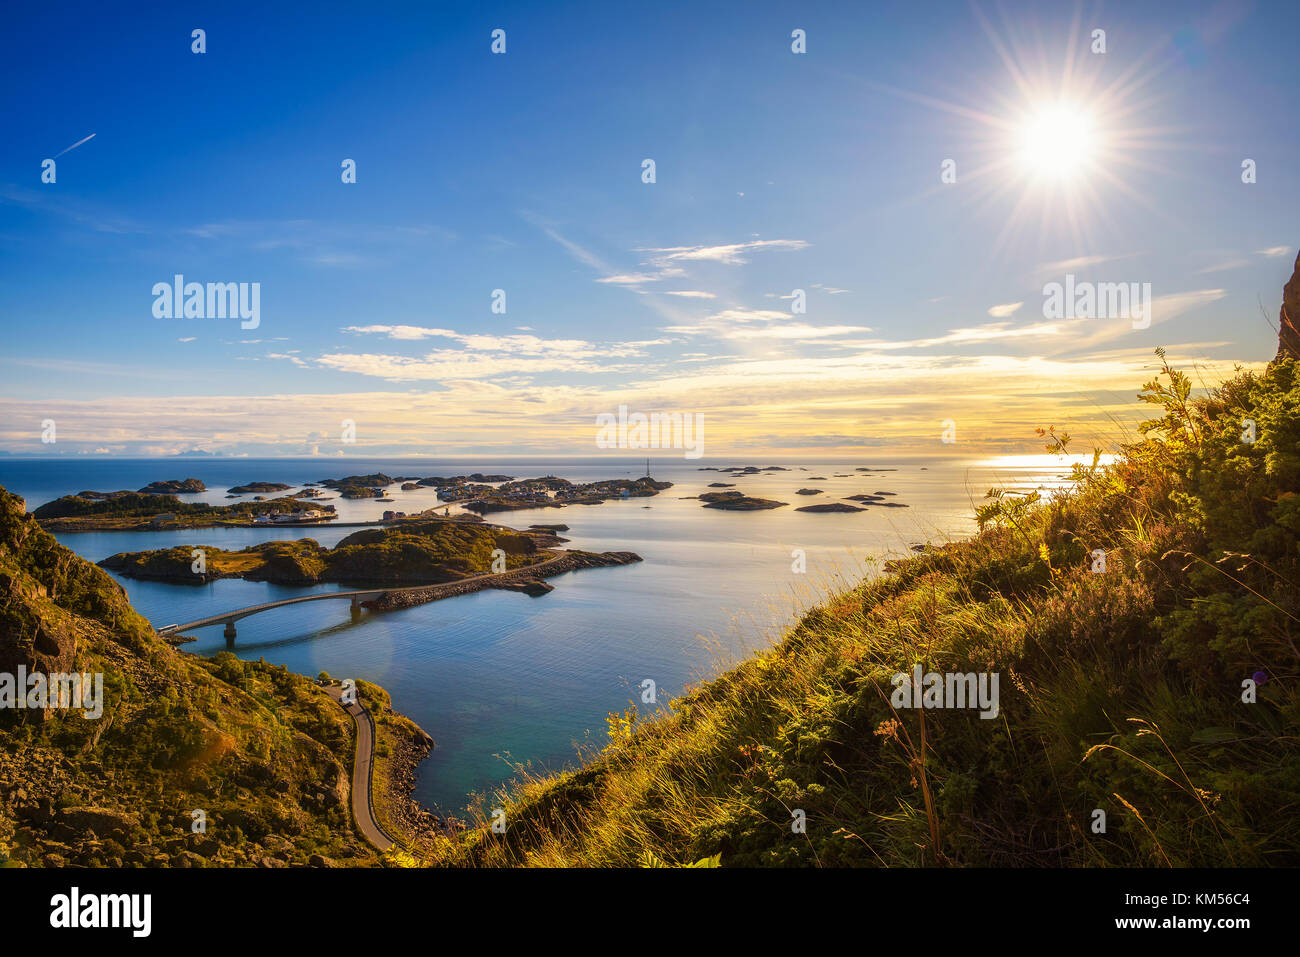 View from mount Festvagtind above the village of Henningsvaer, Norway - Stock Image